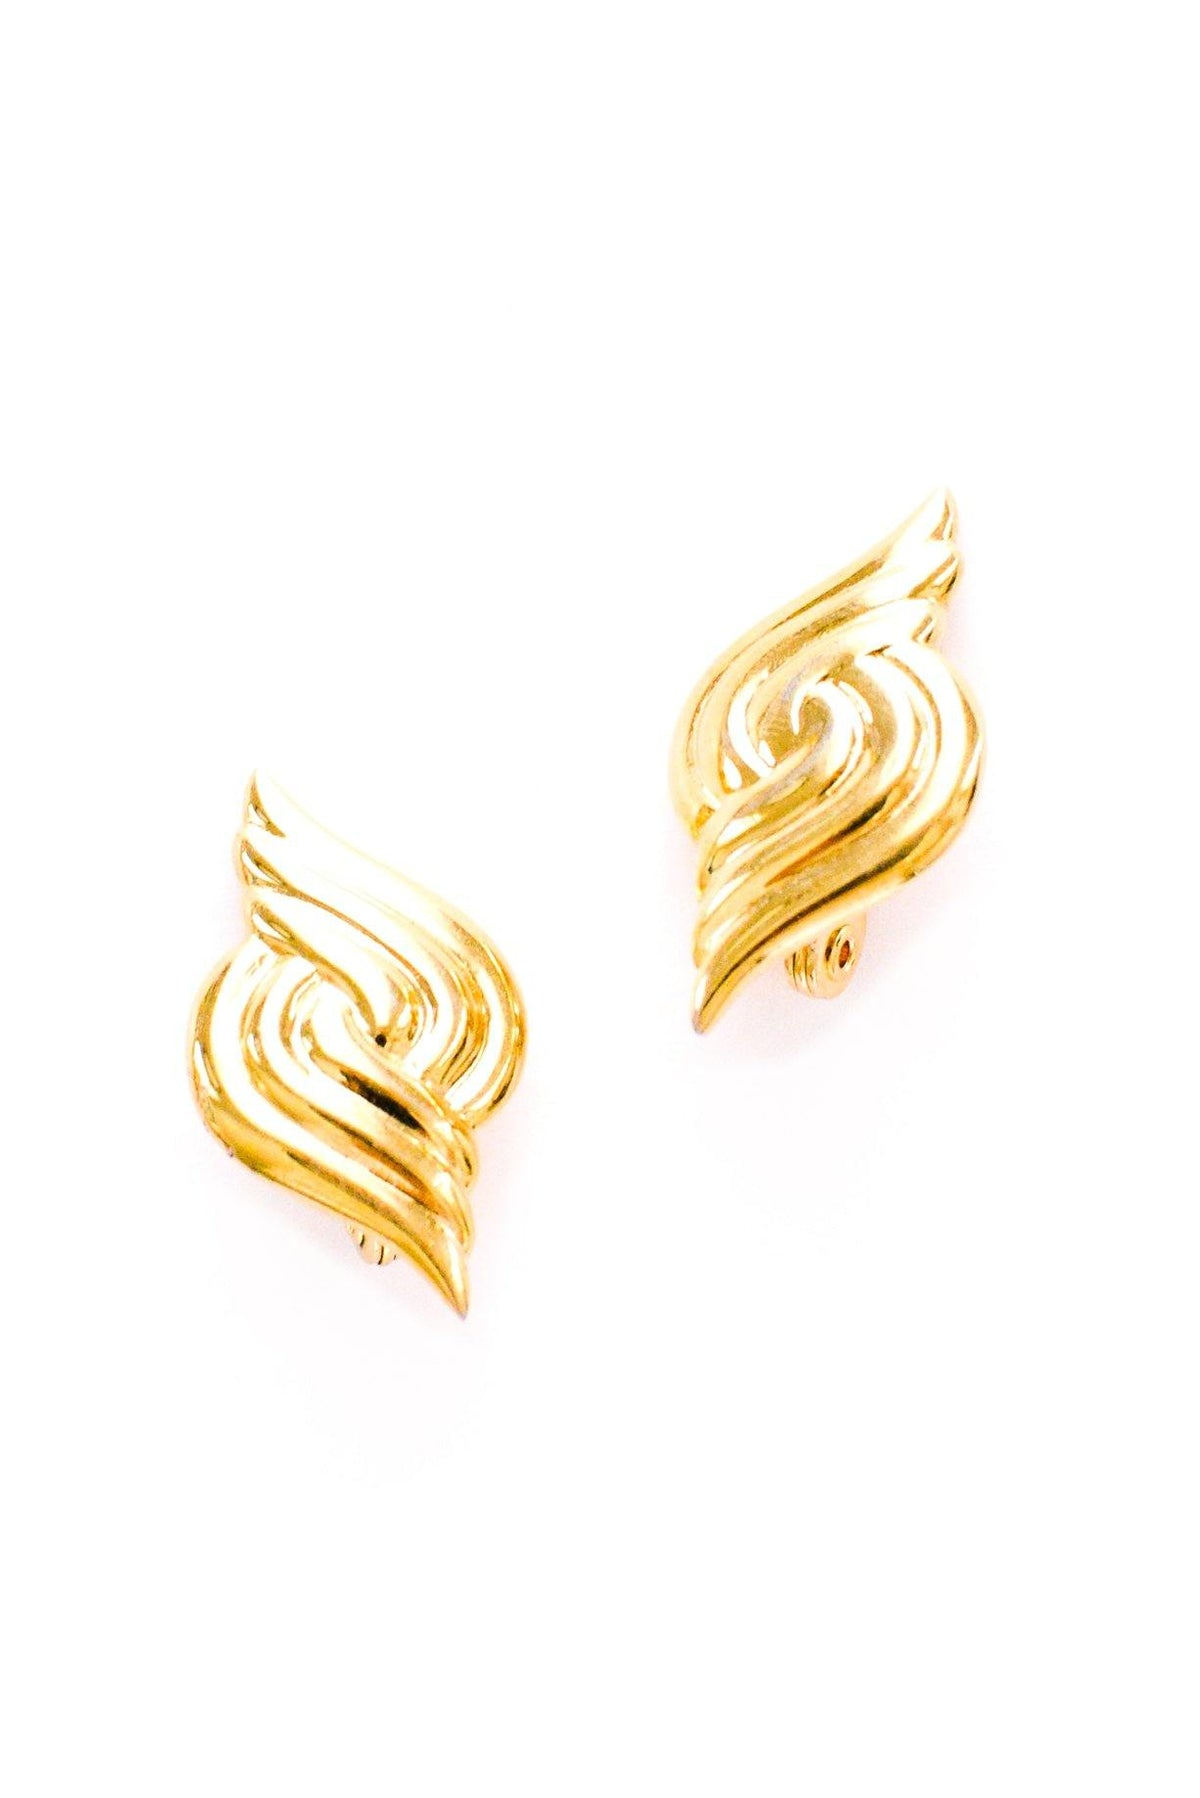 Vintage Monet gold statement swirl earrings from Sweet & Spark.